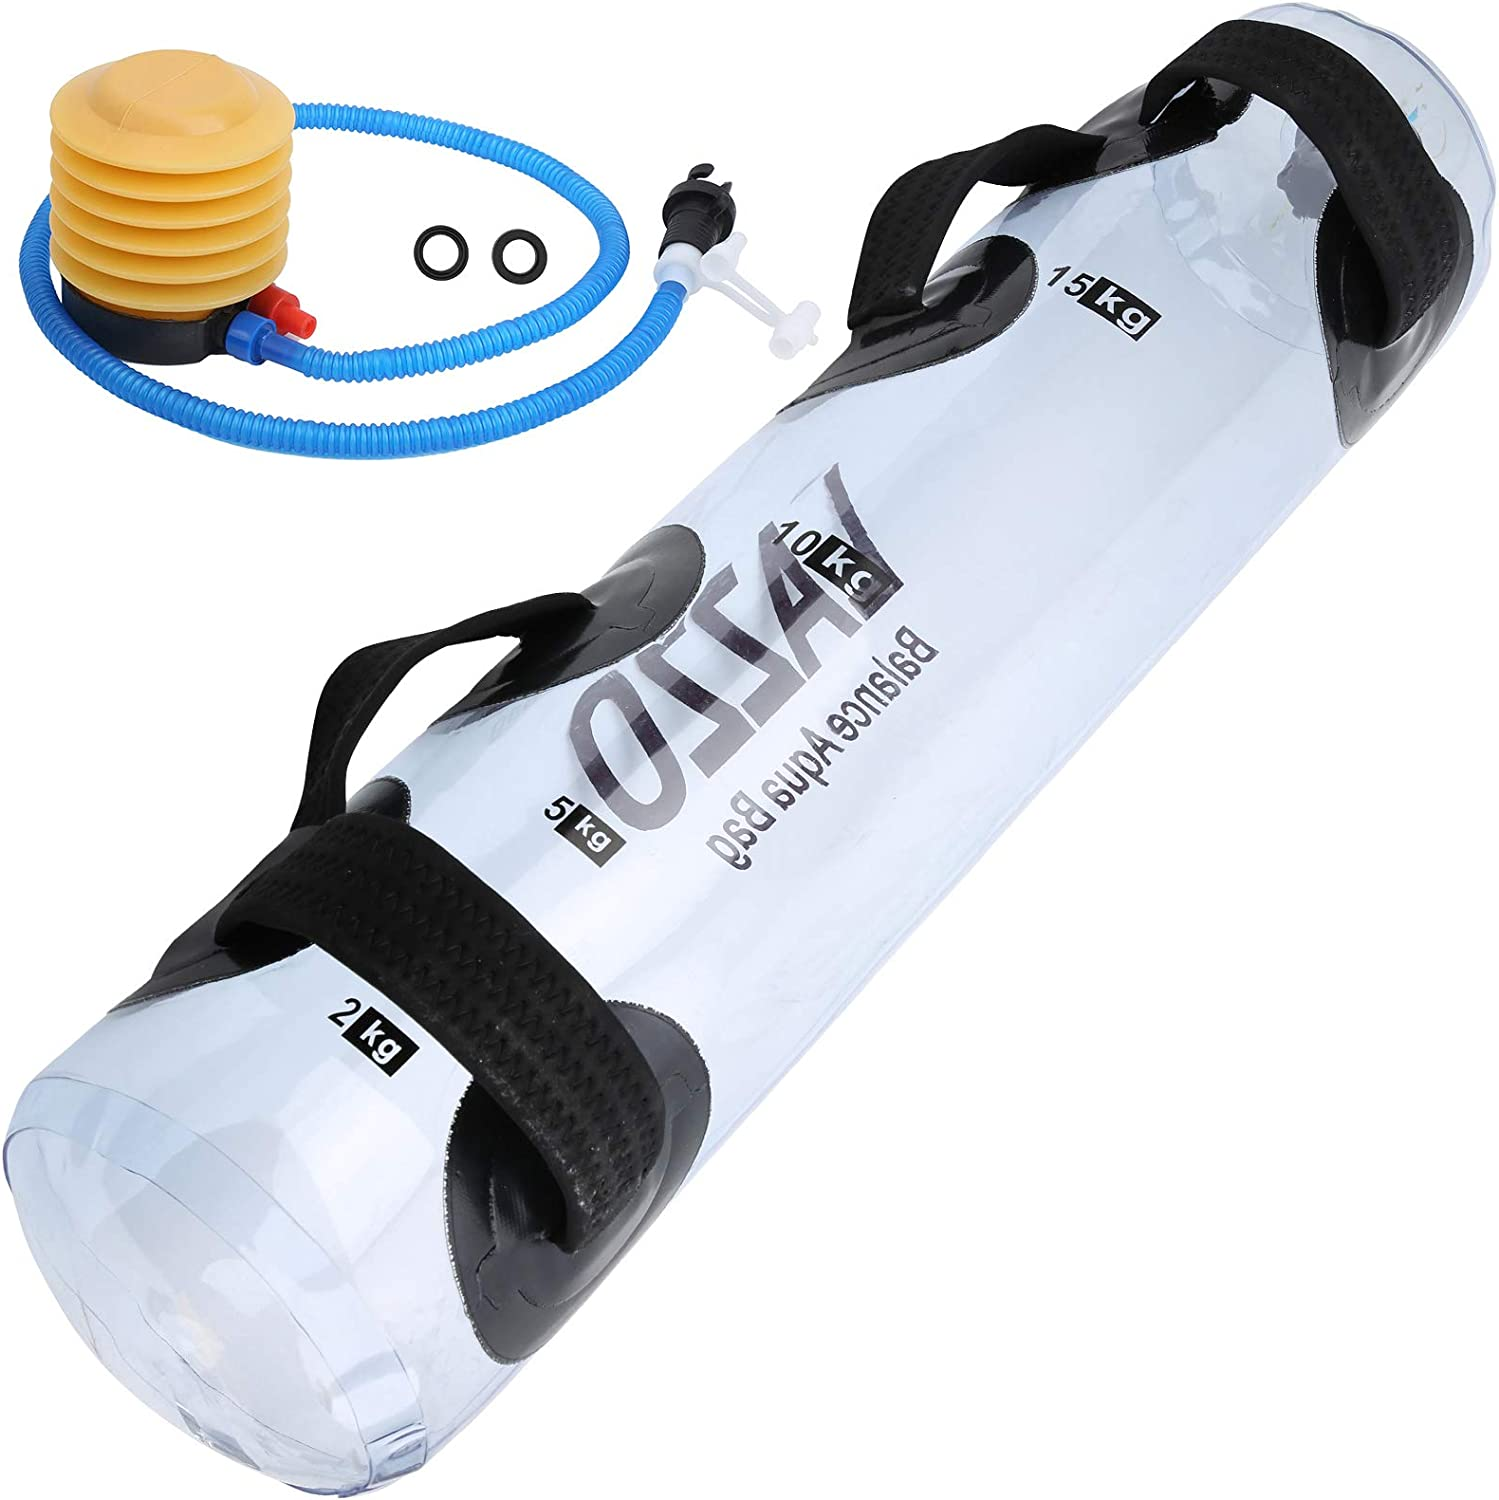 YunsHanSJ Fitness Water Bag Max 79% OFF 20kg Weig Punching High order